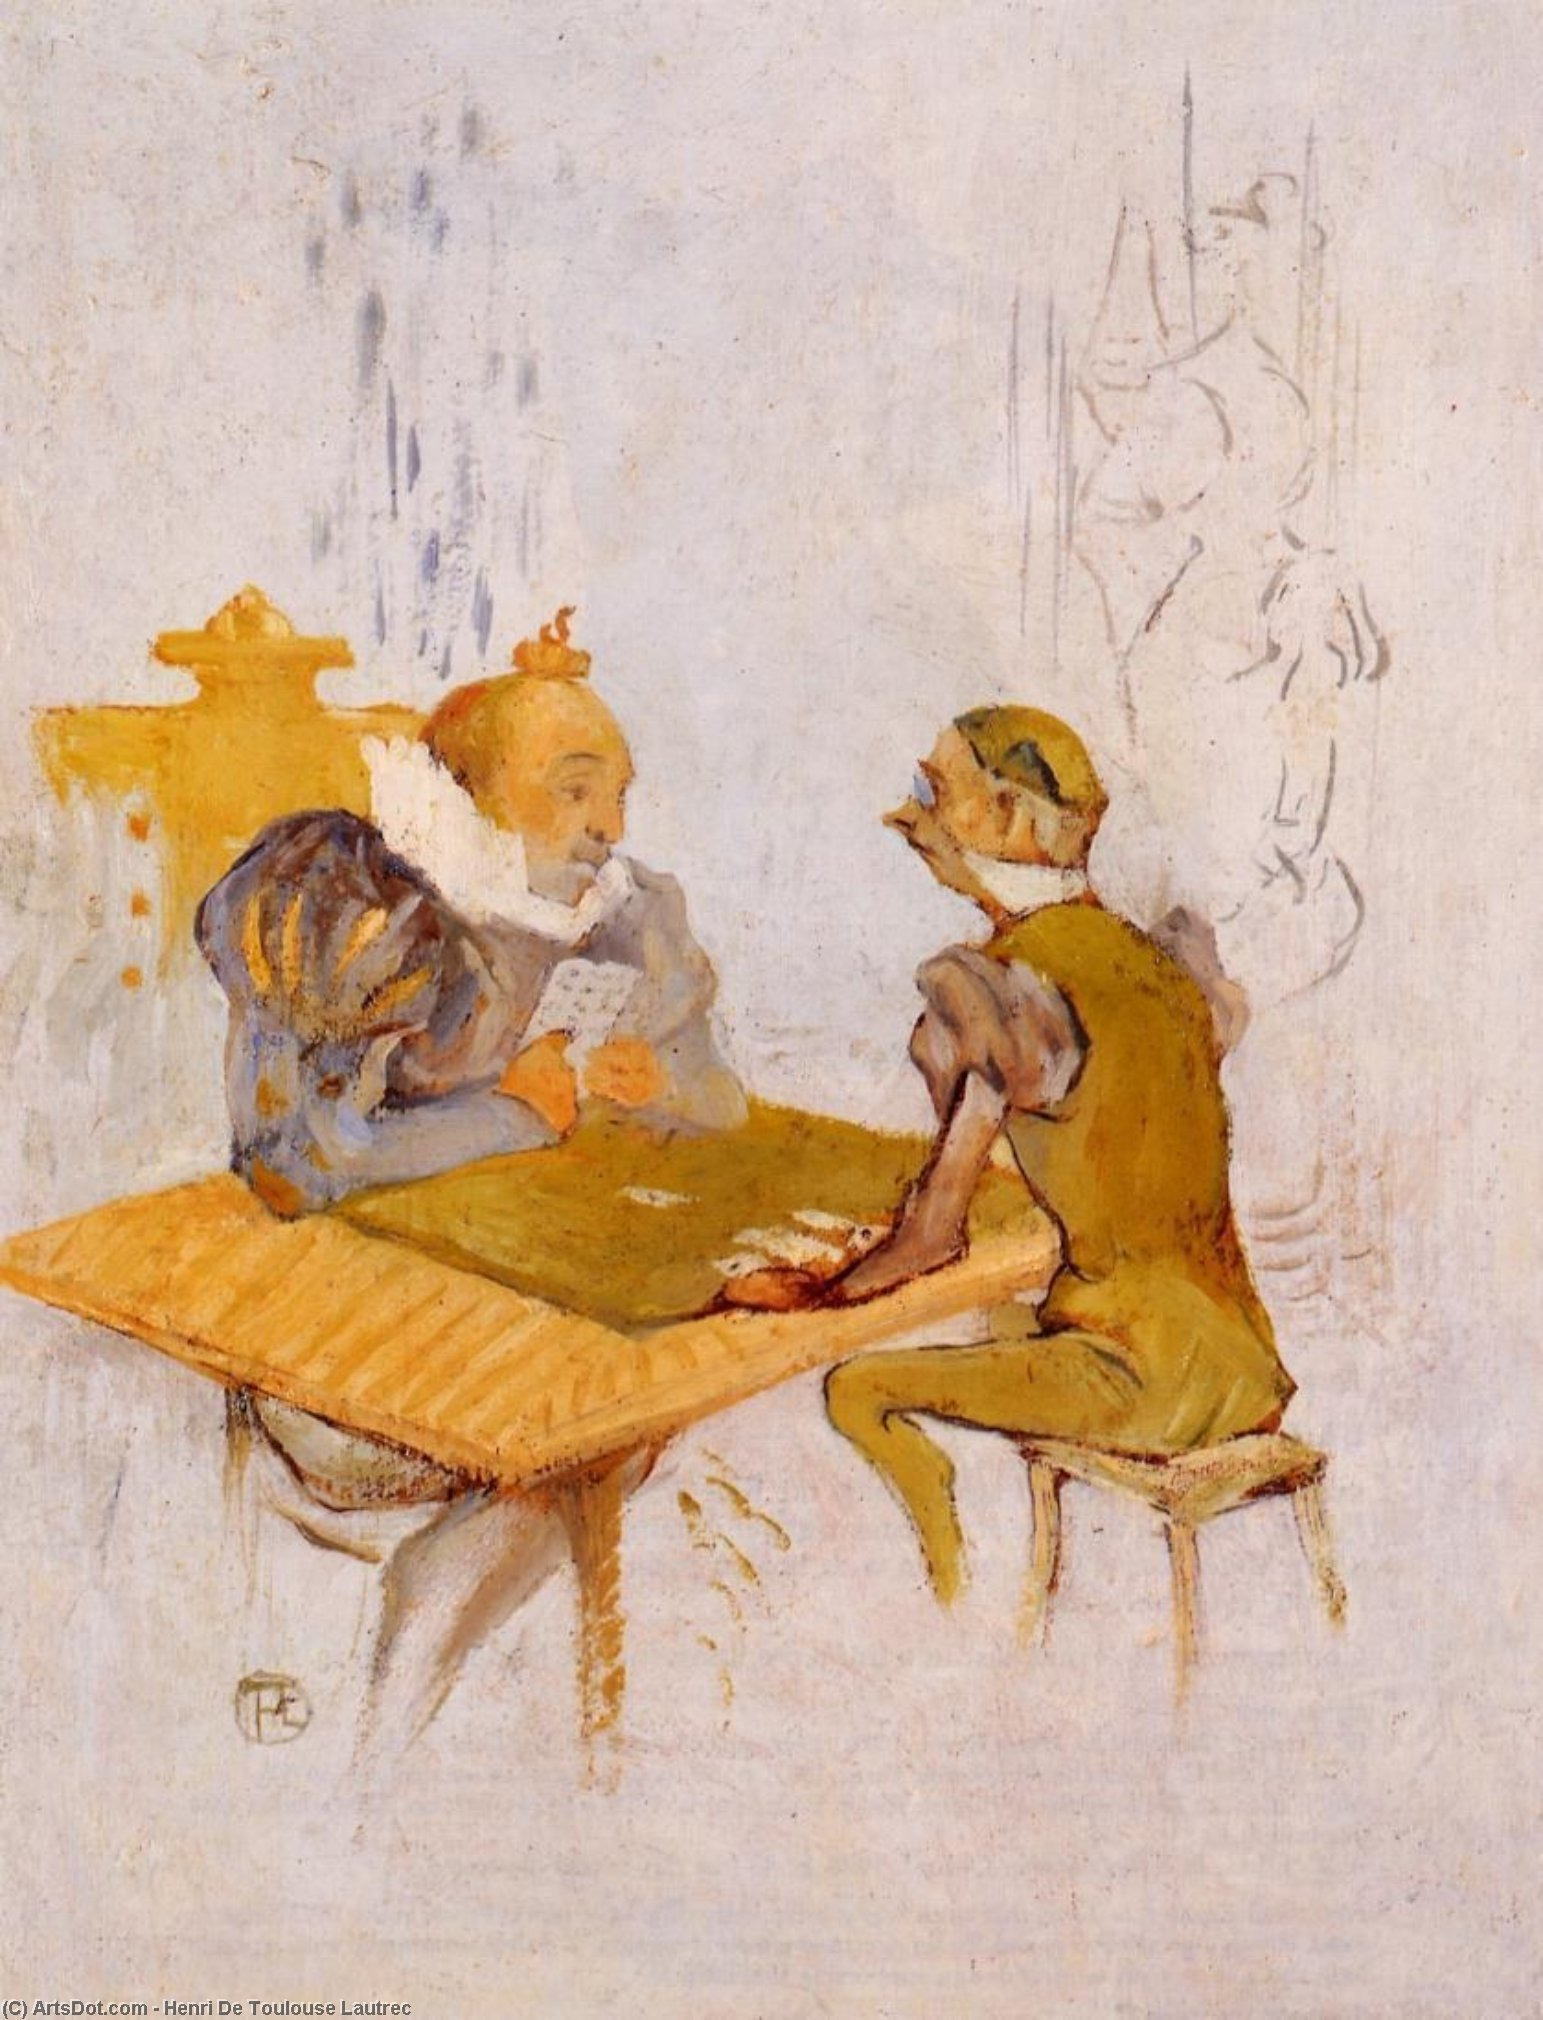 Le Belle et la Bete - Le Besigue, Oil On Panel by Henri De Toulouse Lautrec (1864-1901, France)